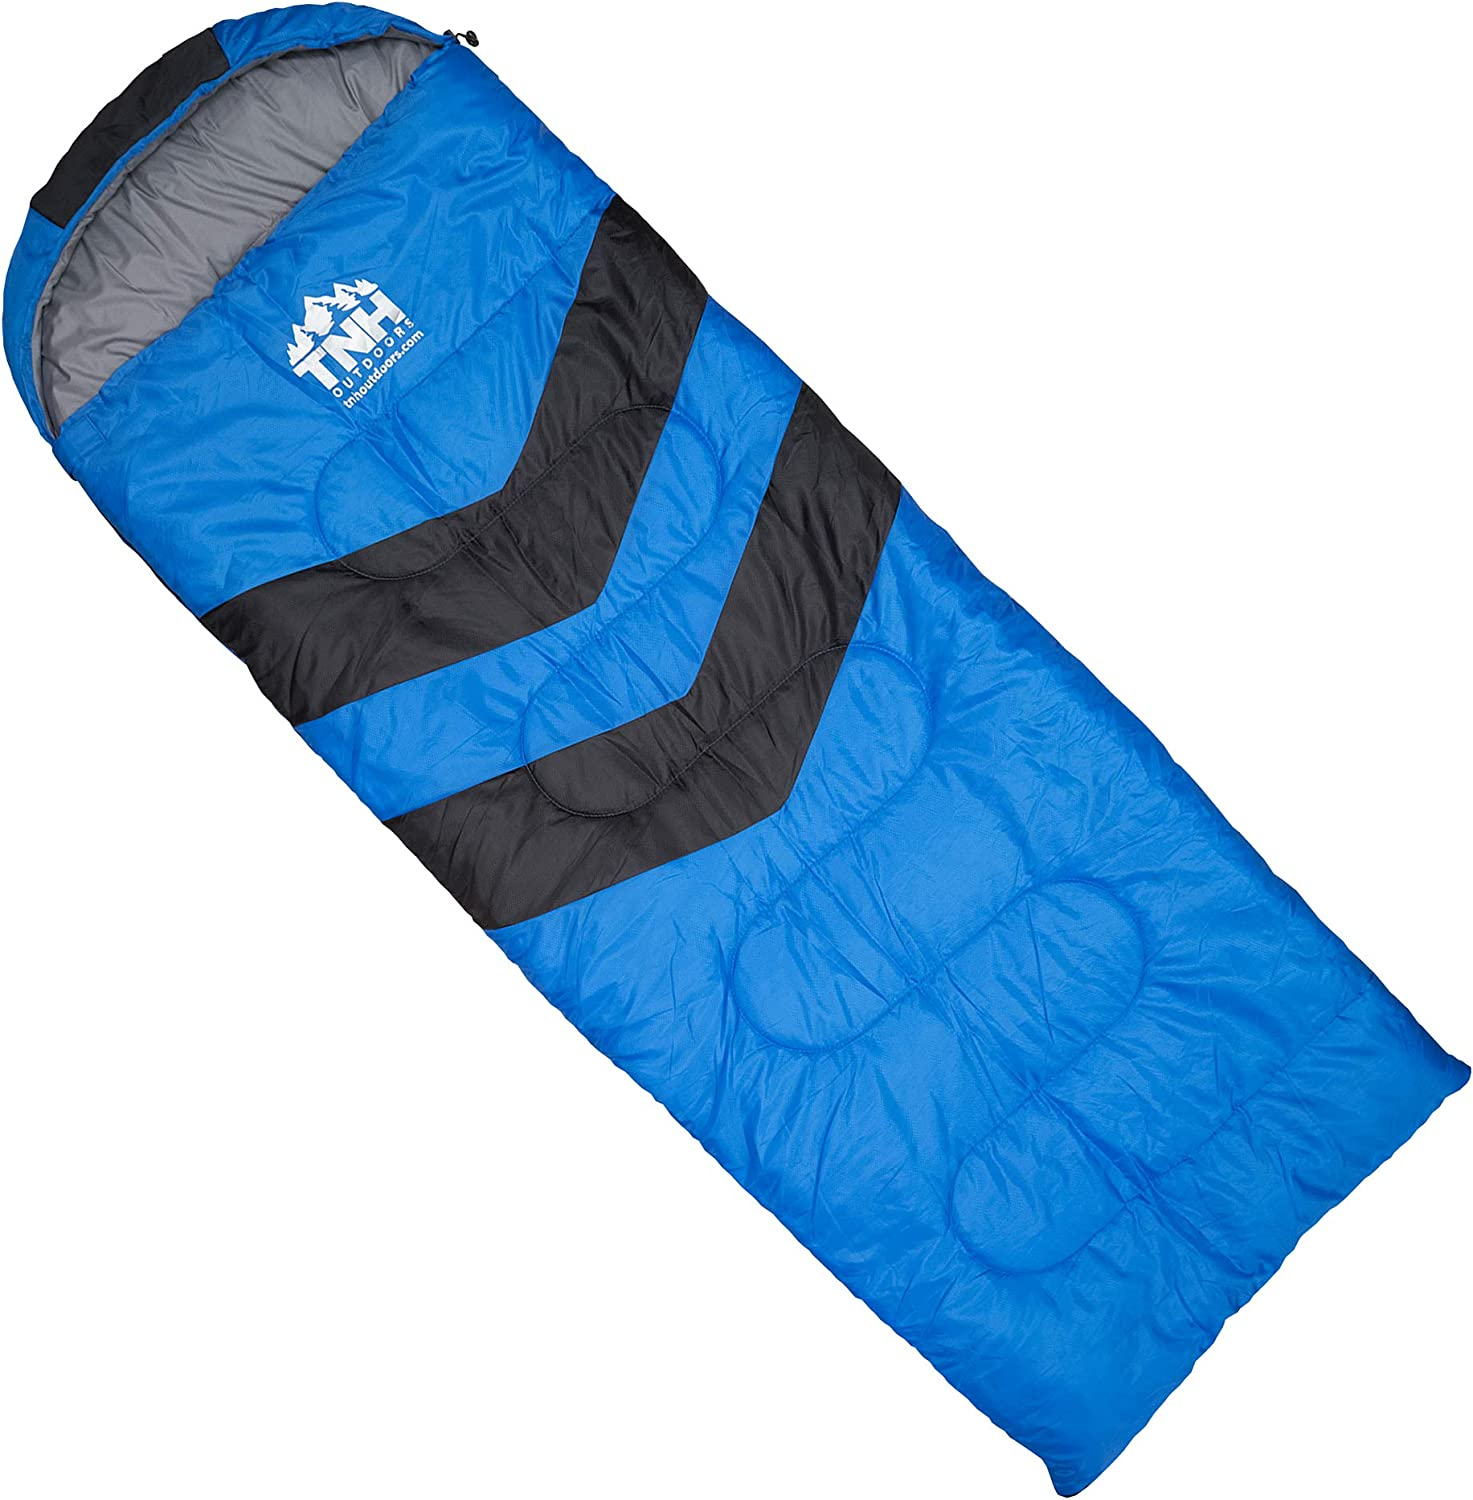 TNH Outdoors Sleeping Bag Waterproof Travelling Adult Outdoors Gear Great for 3 Hiking 4 Season Camping Warm in Winter Comfort with Compression Sack Mummy Lightweight Portable